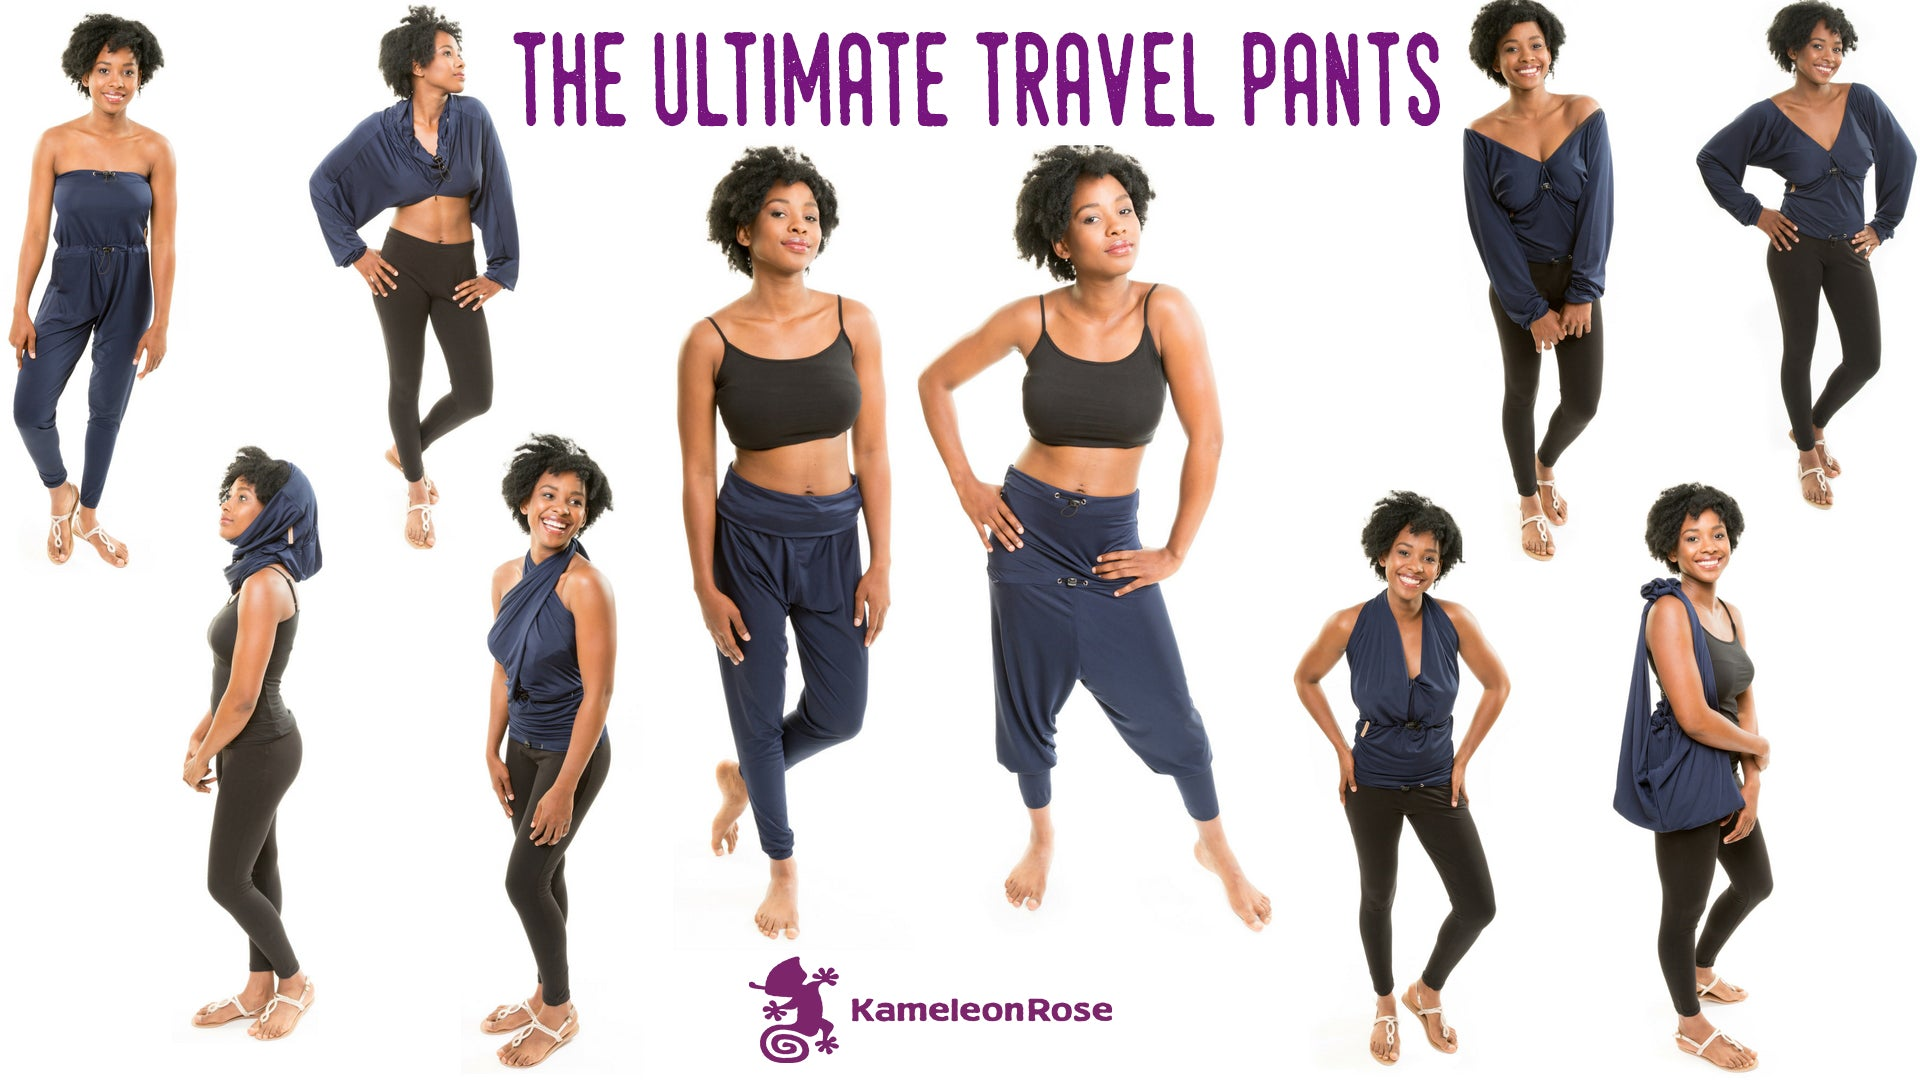 The Ultimate Travel Pants